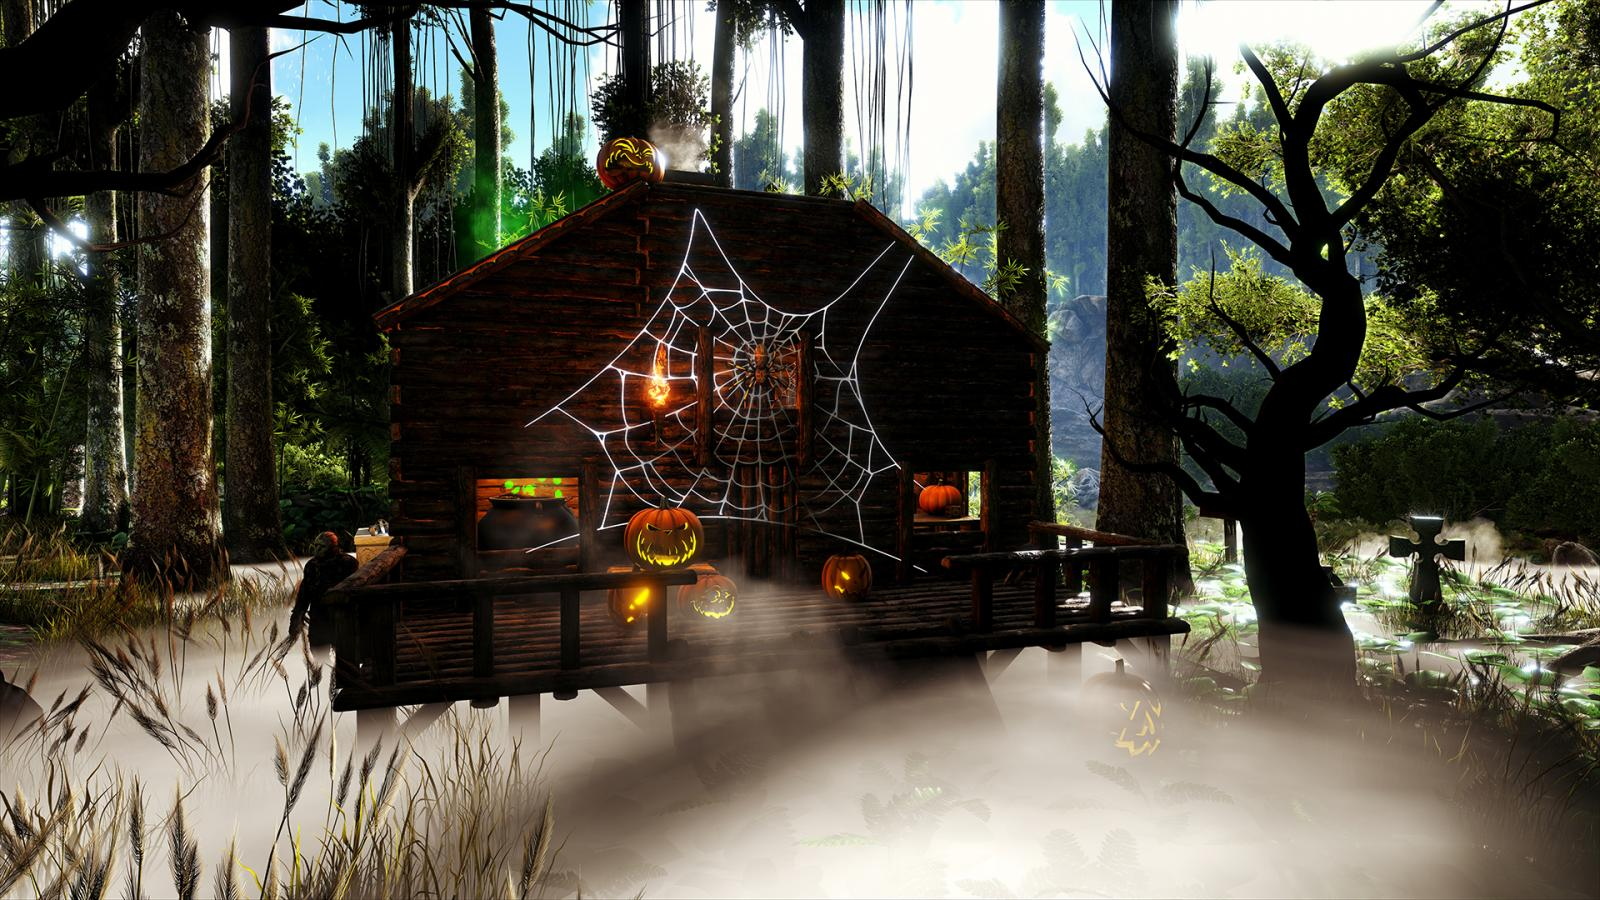 large.5a0fb88e89982_AsH-HalloweenCabin-SuperResolution.jpg